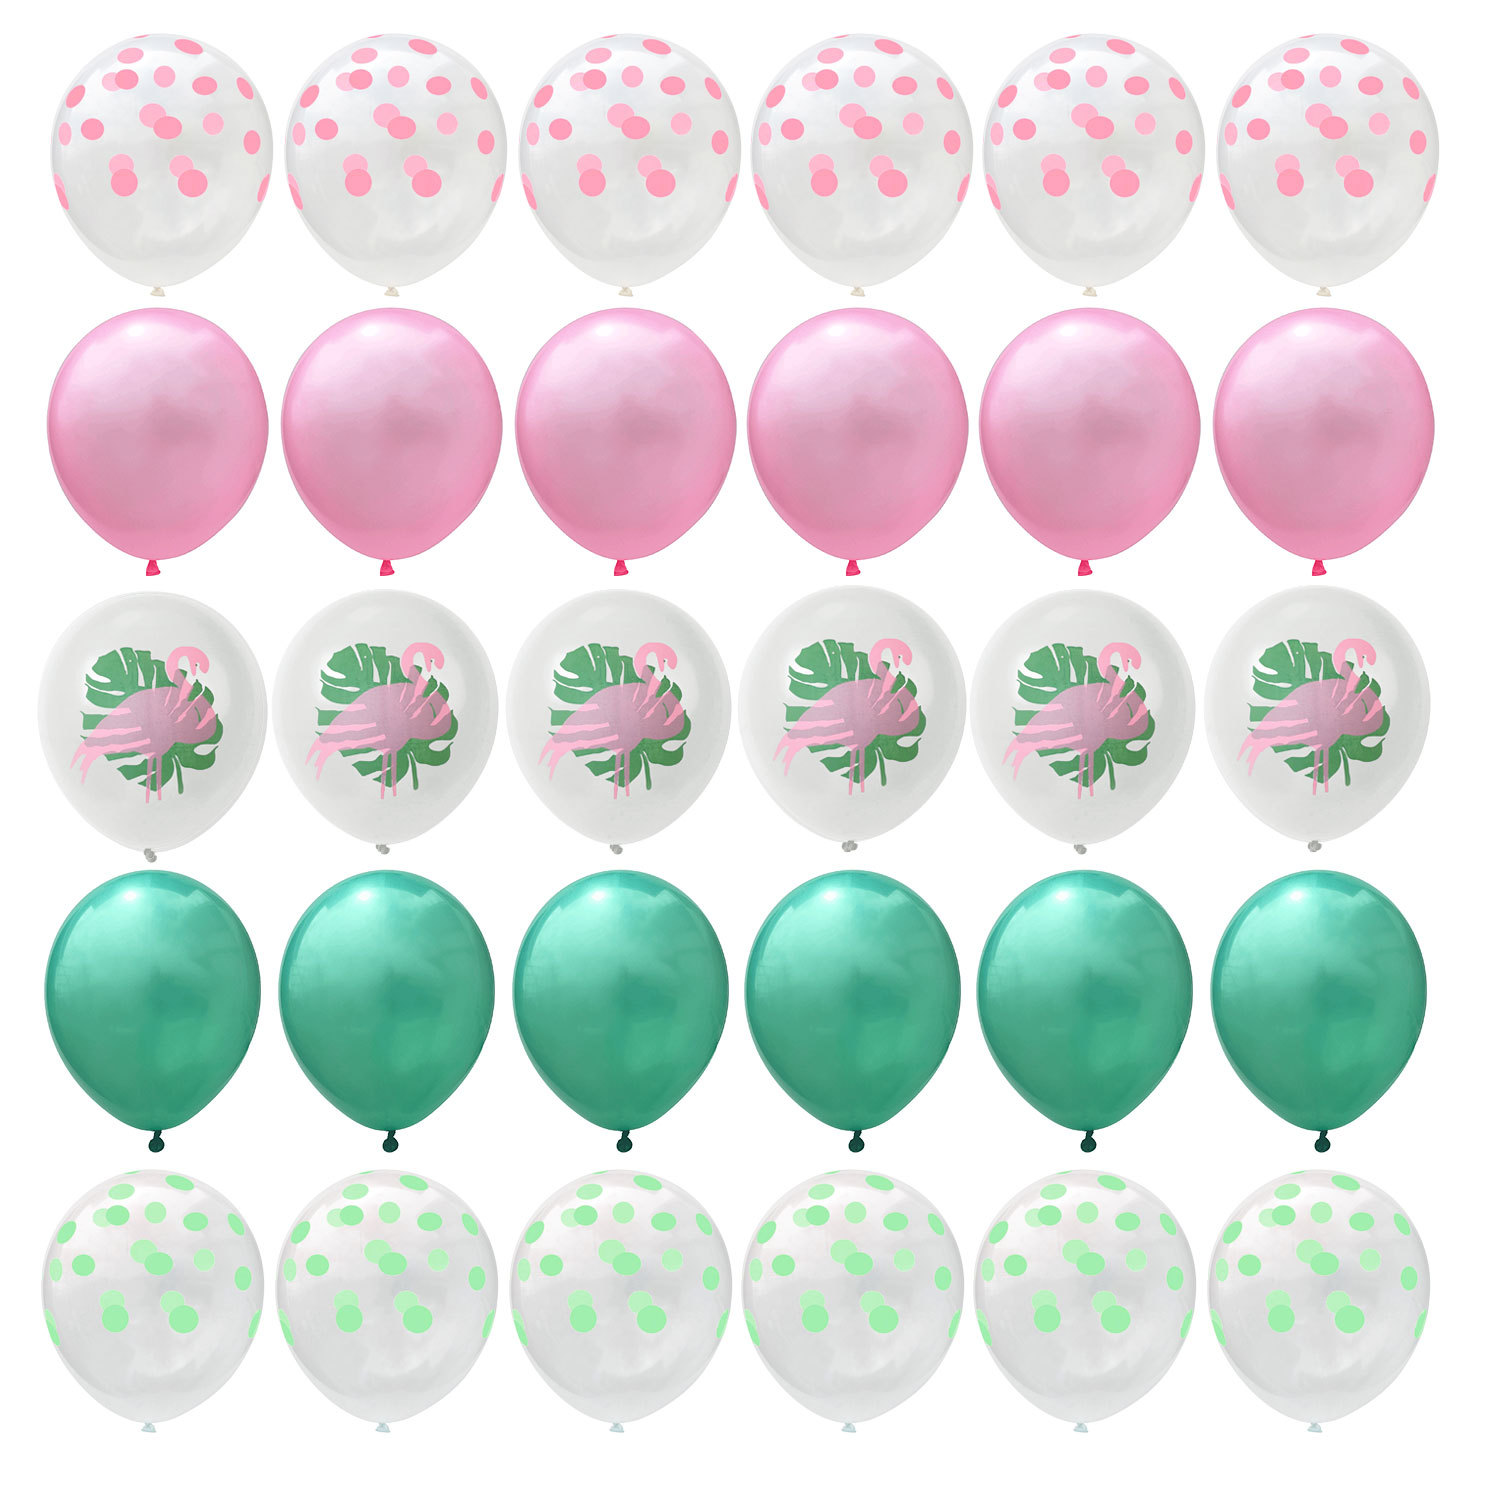 Amawill 30pcs Lot Tropical Theme Party Latex Balloons With Flamingo